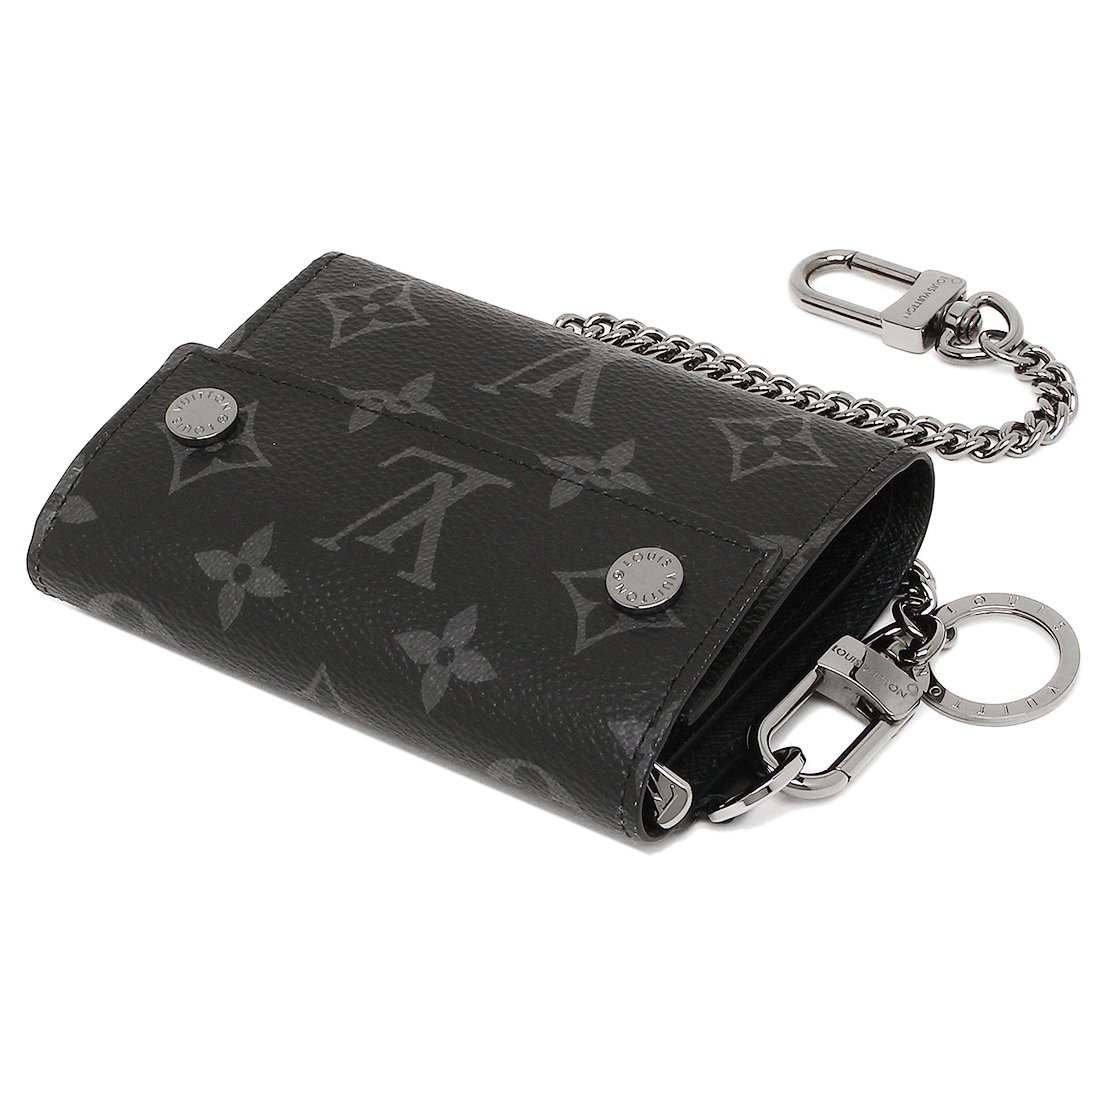 check out dae12 69ab1 Amazon | [ルイヴィトン] 折財布 メンズ LOUIS VUITTON M63510 ...